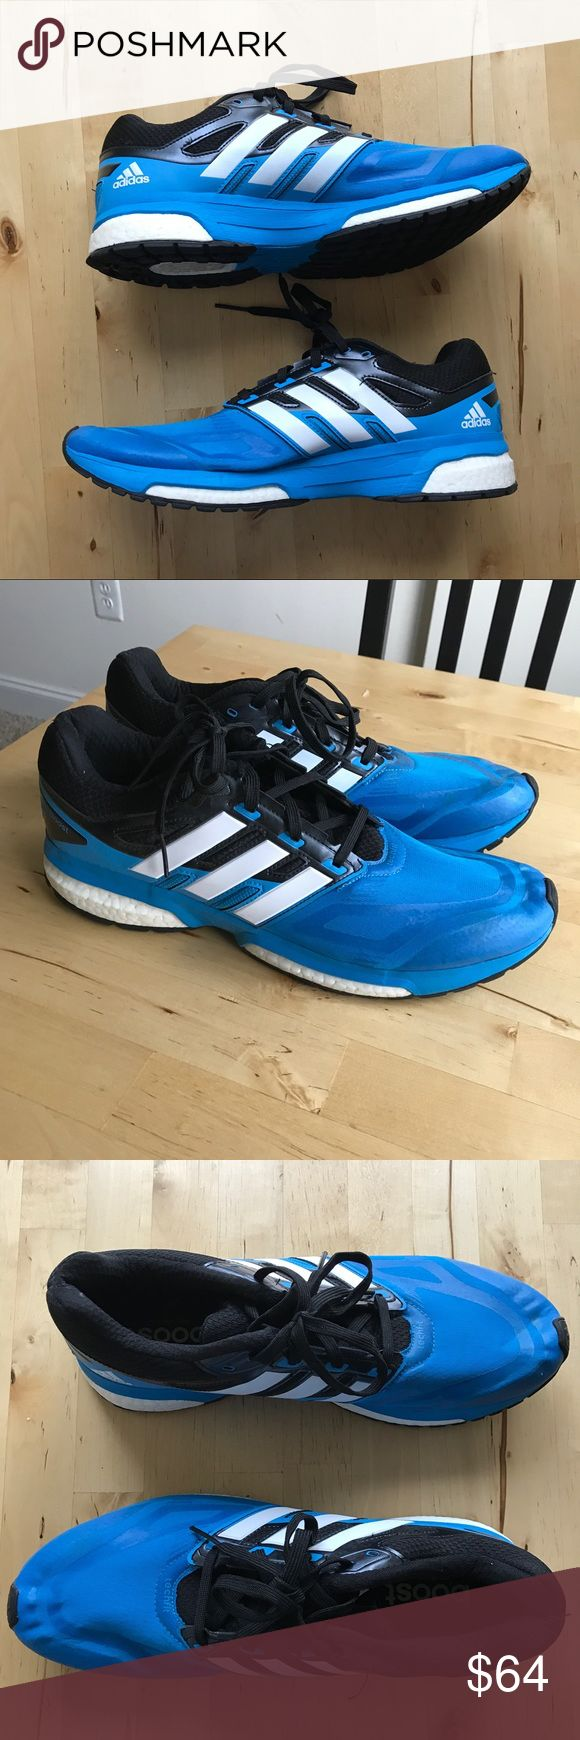 Adidas Running shoes These are great adidas running shoes in aqua blue color. They have only been worn twice so perfect condition. Response Boost model in blue with black and white. adidas Shoes Athletic Shoes